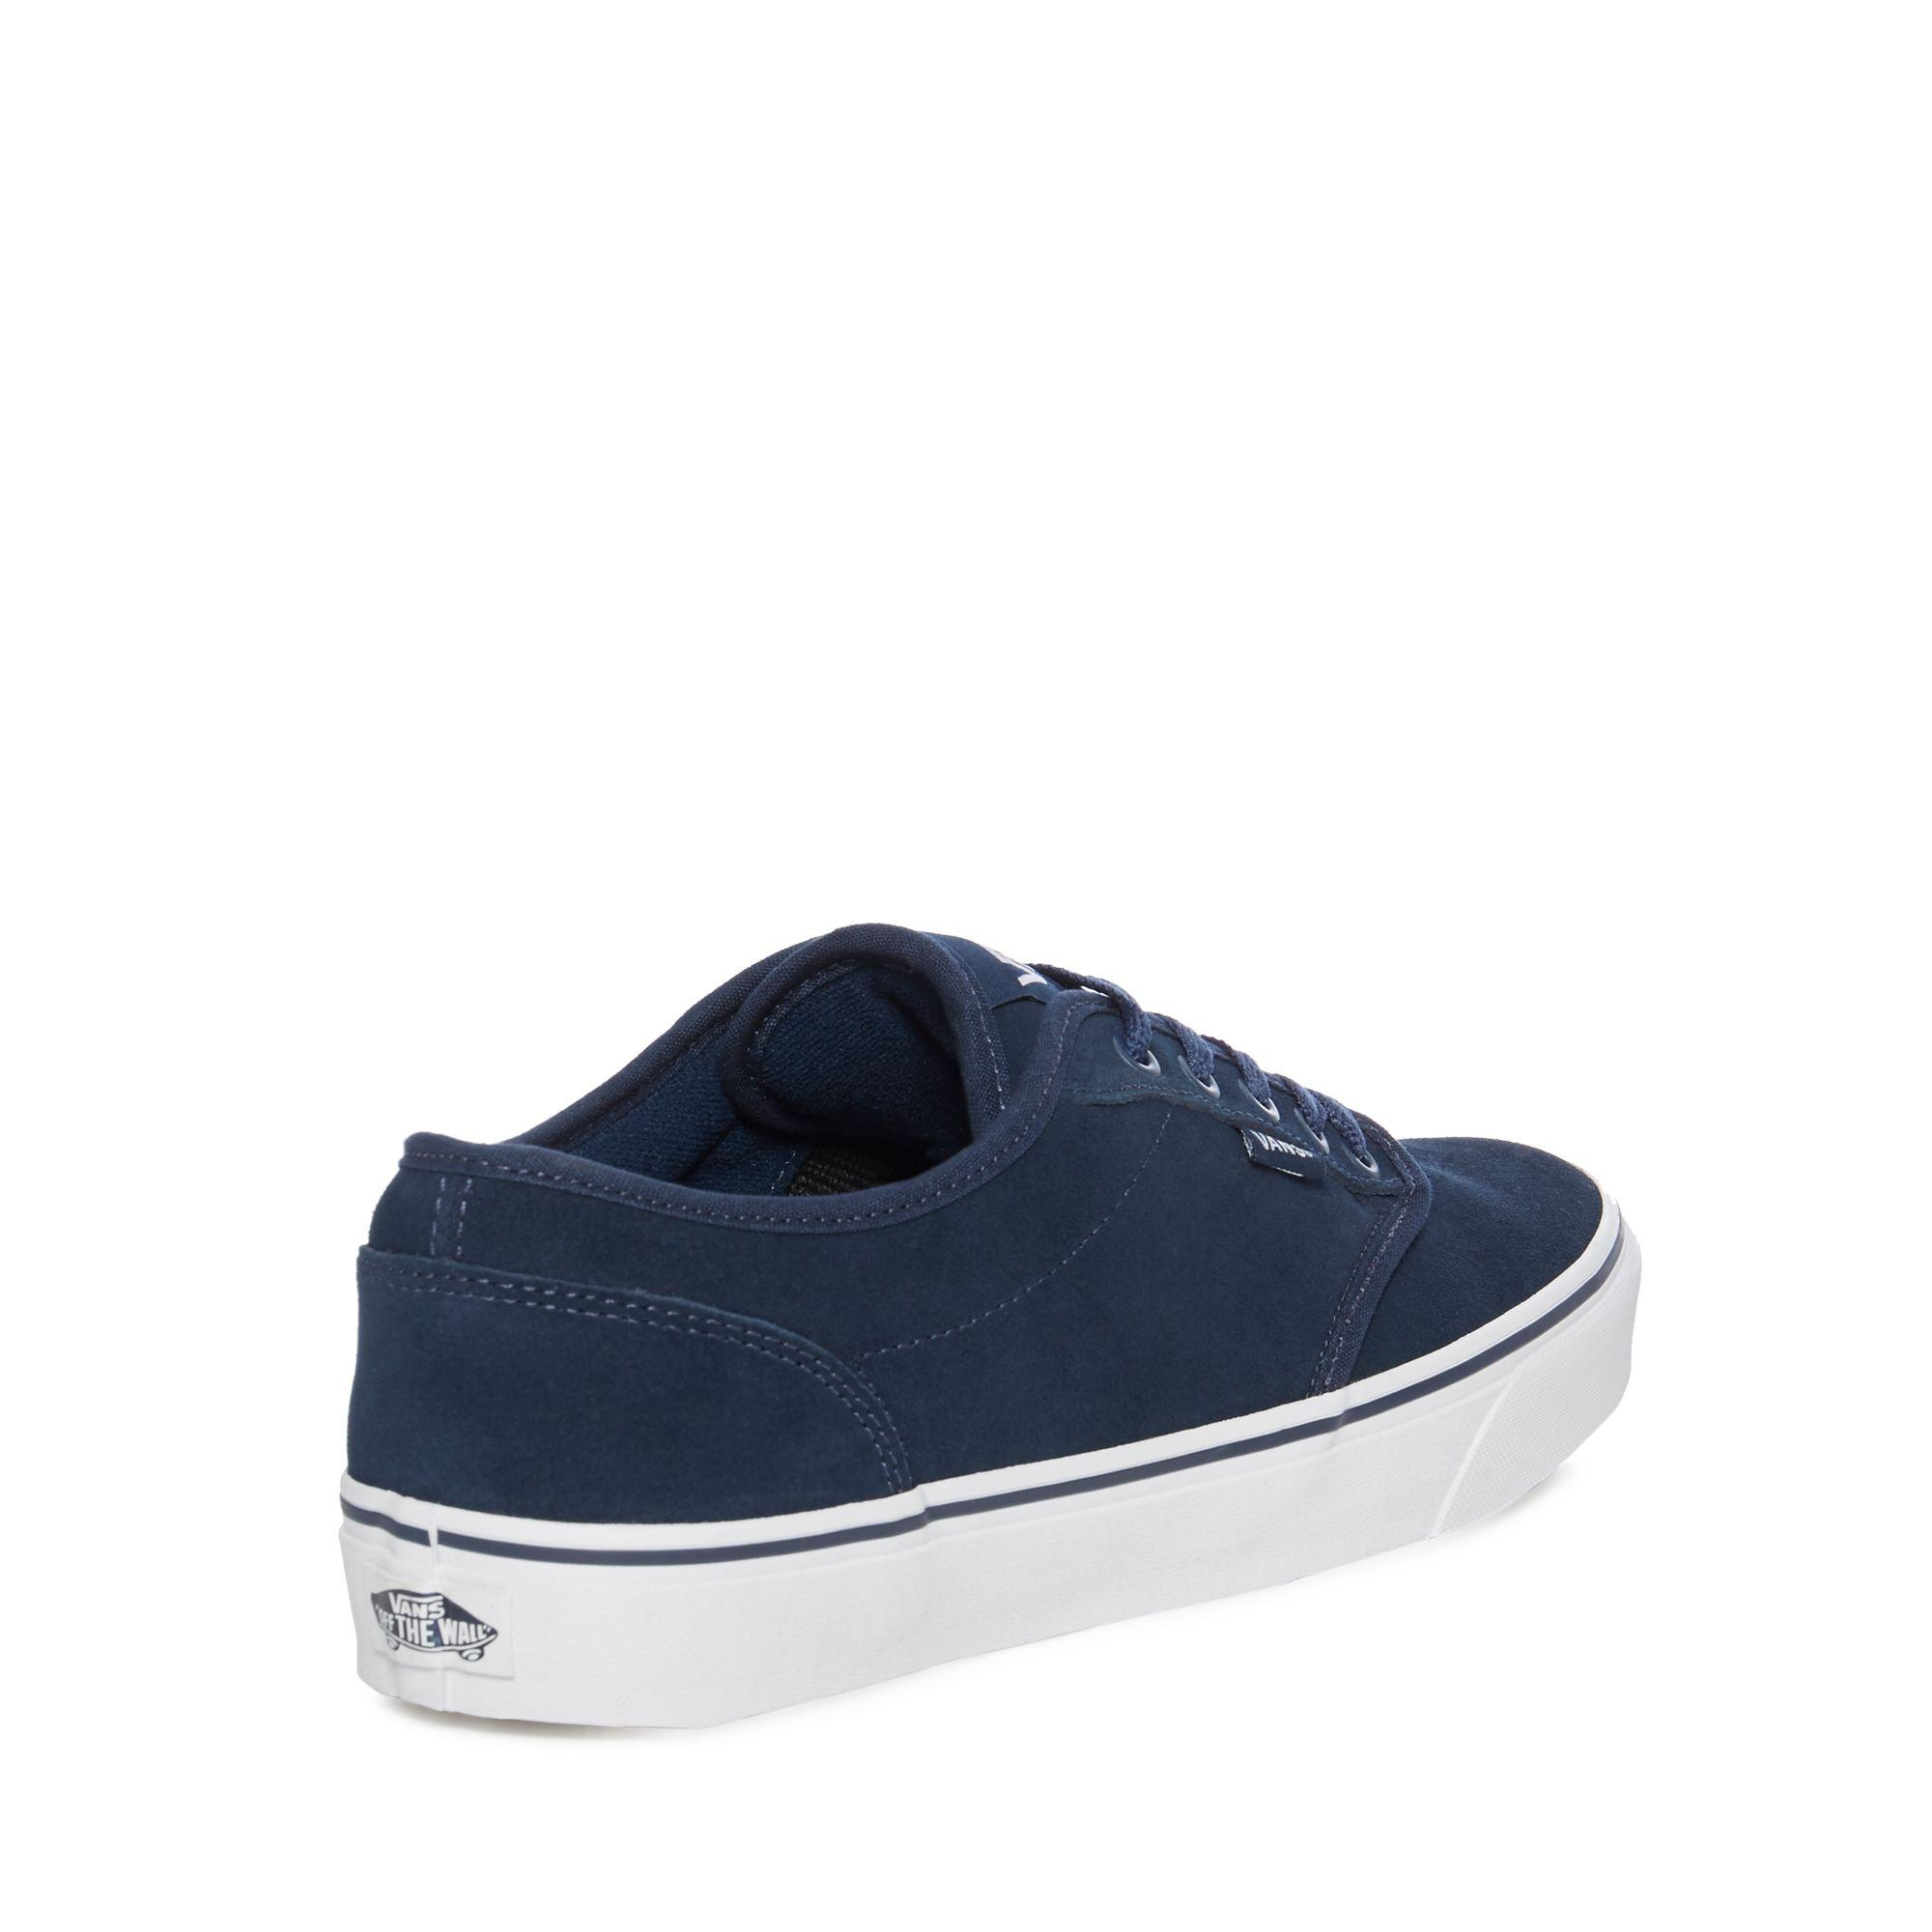 Navy suede 'Atwood' trainers outlet pictures cheap original 2015 cheap price low shipping cheap price cheap sale how much UYM6xTzDl